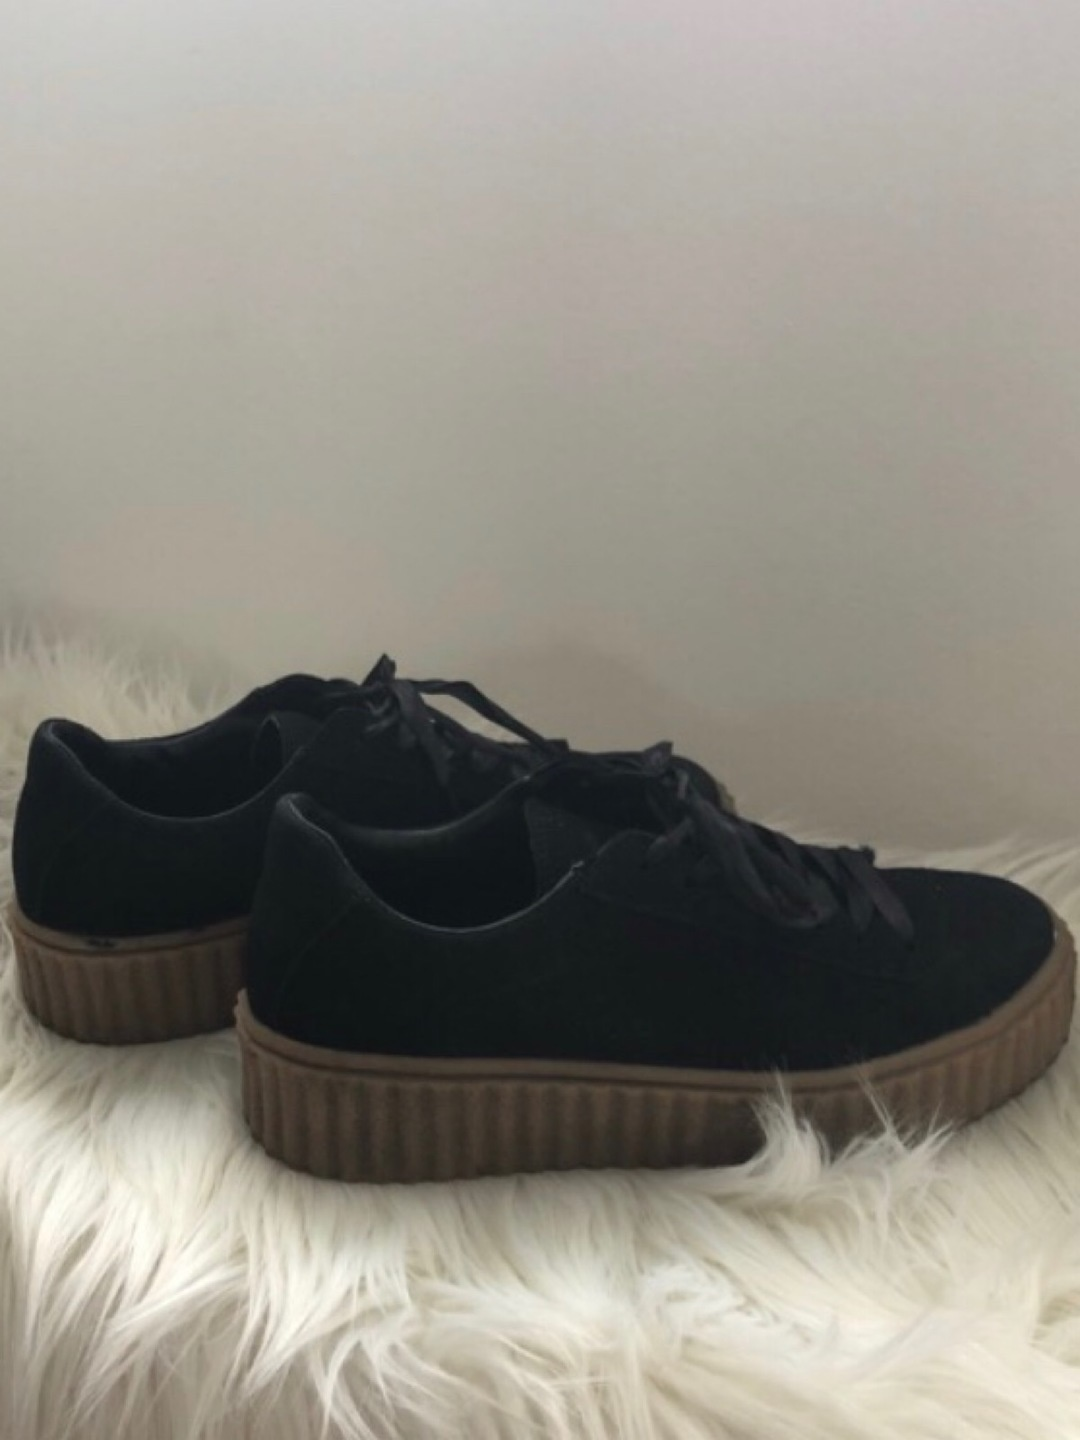 Women's sneakers - ICHI photo 1